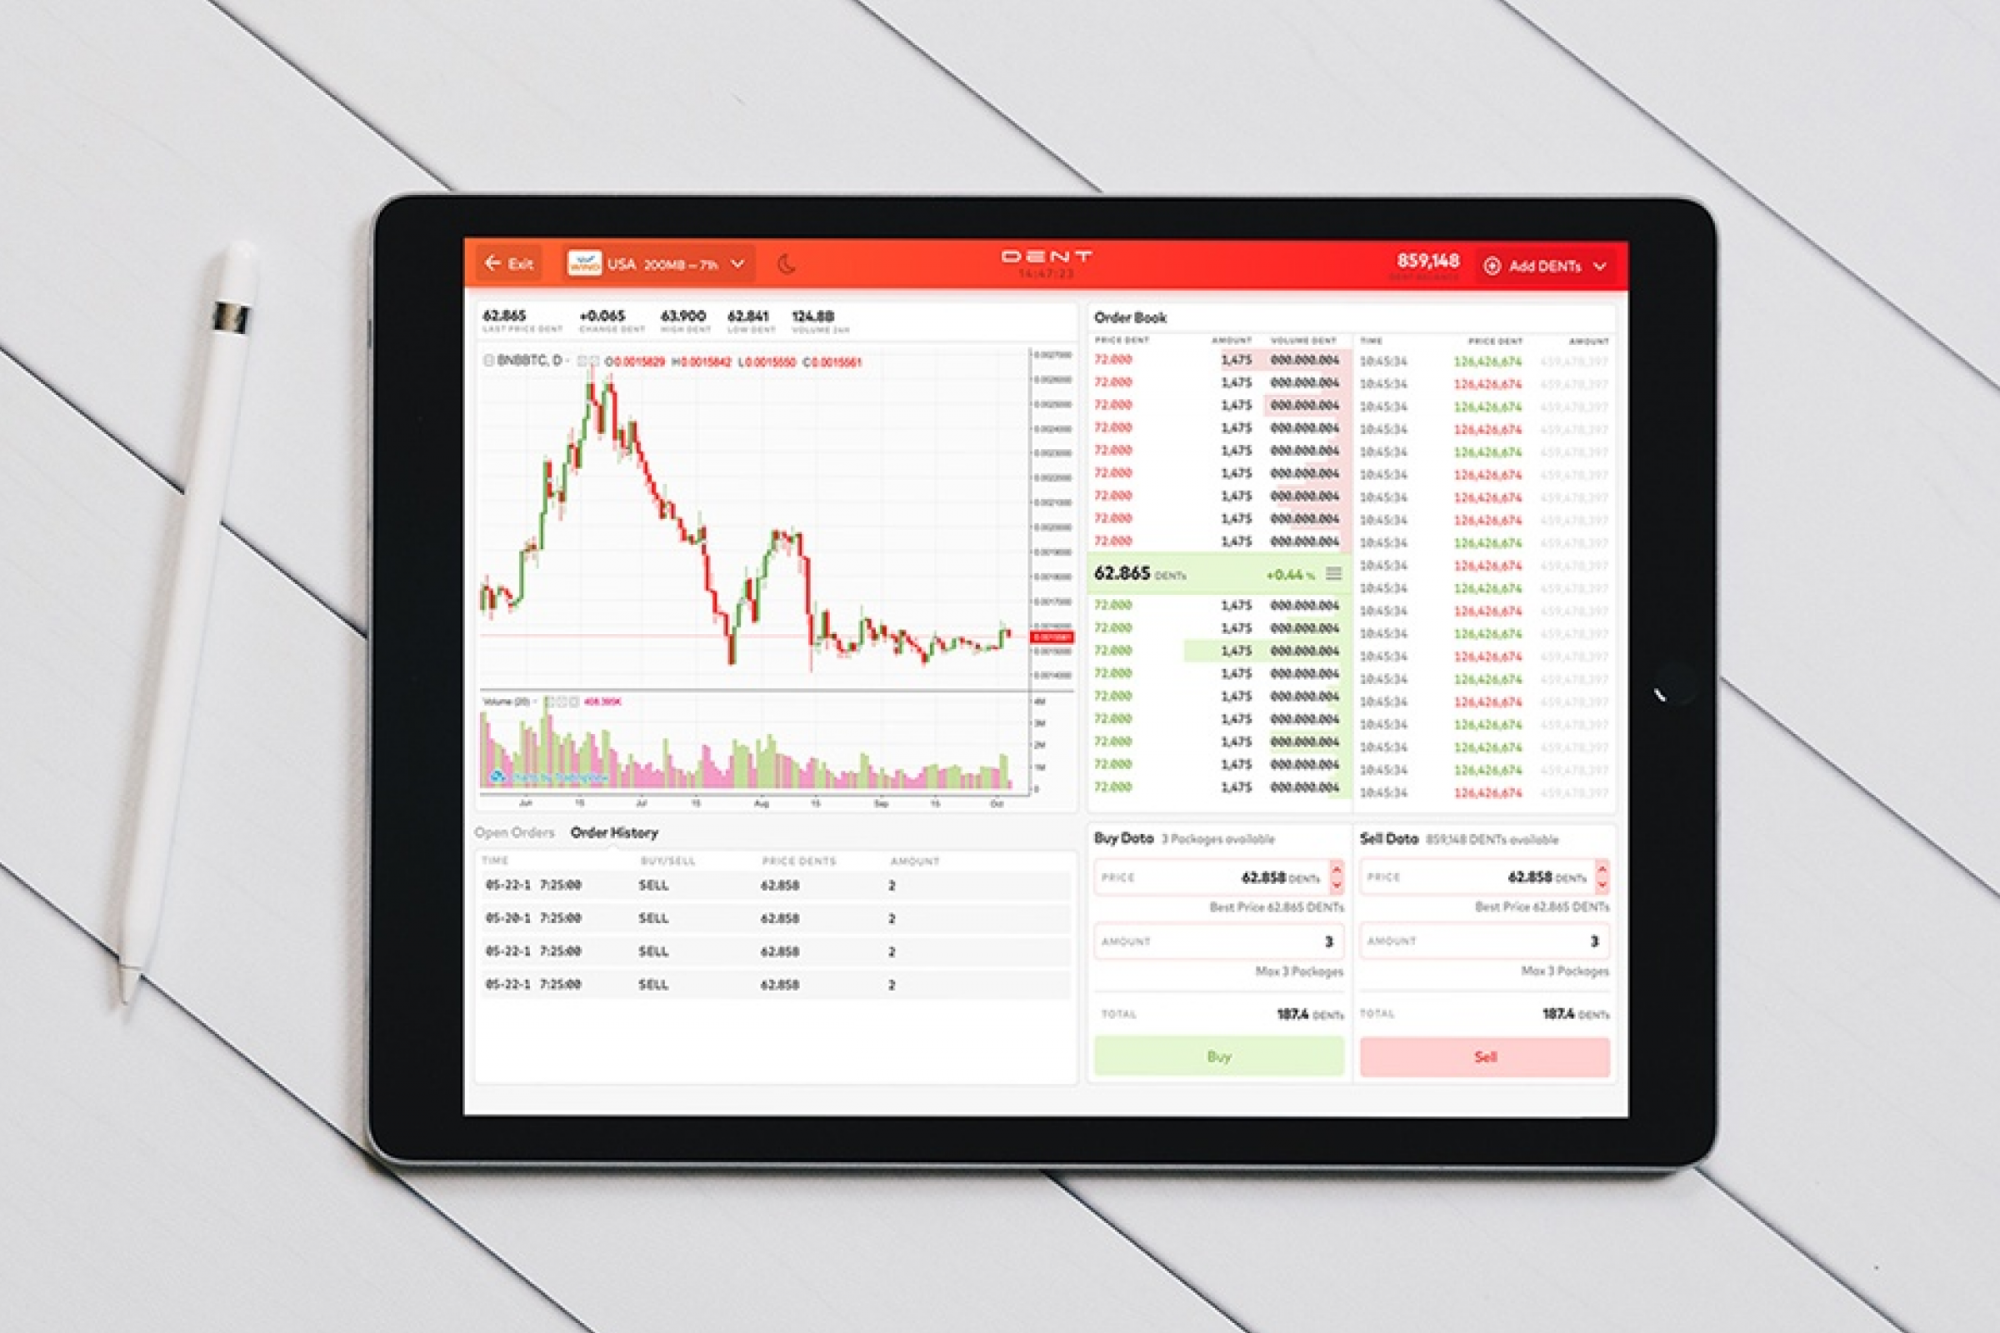 The picture shows the core of the app, the Trading View with the Order Book and Trade History.